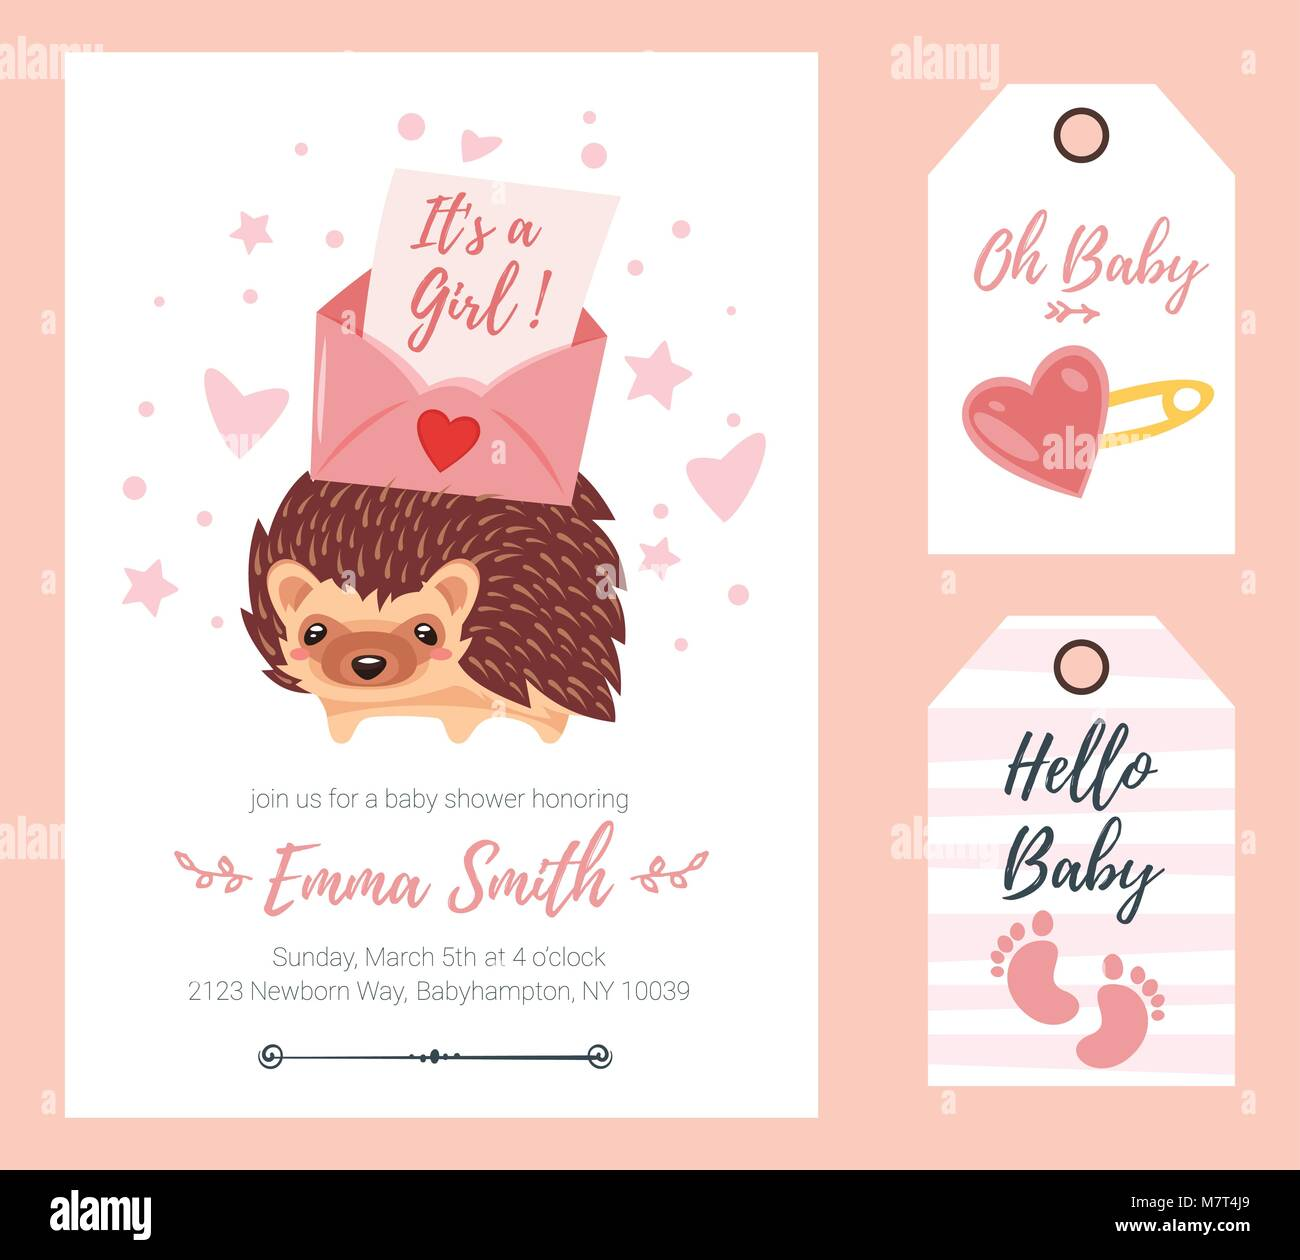 Vector cartoon style illustration of baby shower invitation baby vector cartoon style illustration of baby shower invitation baby girl celebration greeting card and tags template cute hedgehog with colorful letter stopboris Choice Image